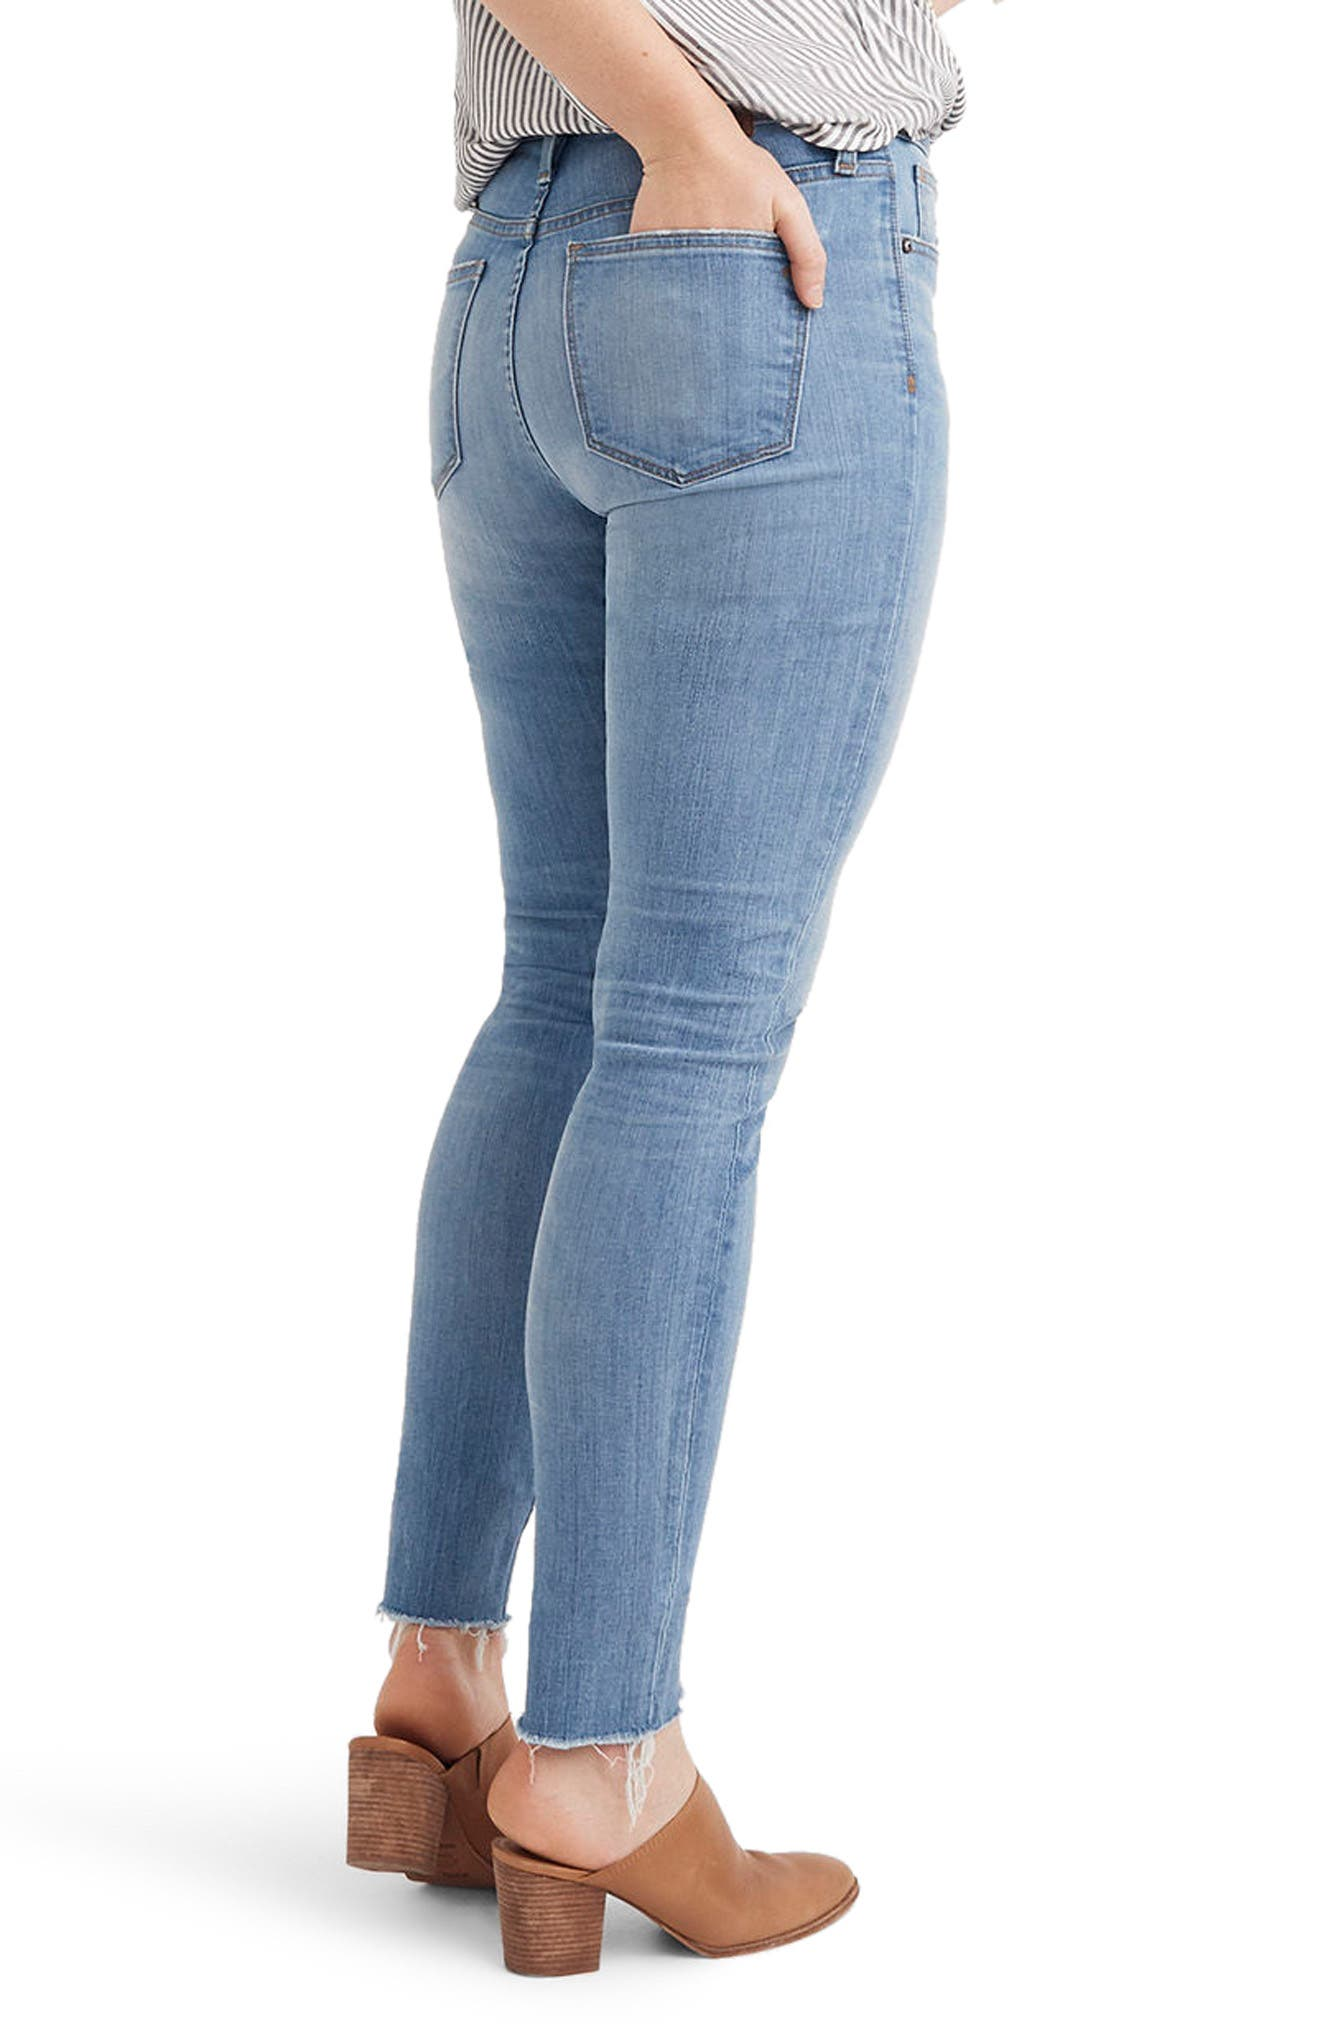 9-Inch High Waist Skinny Jeans,                             Alternate thumbnail 3, color,                             900